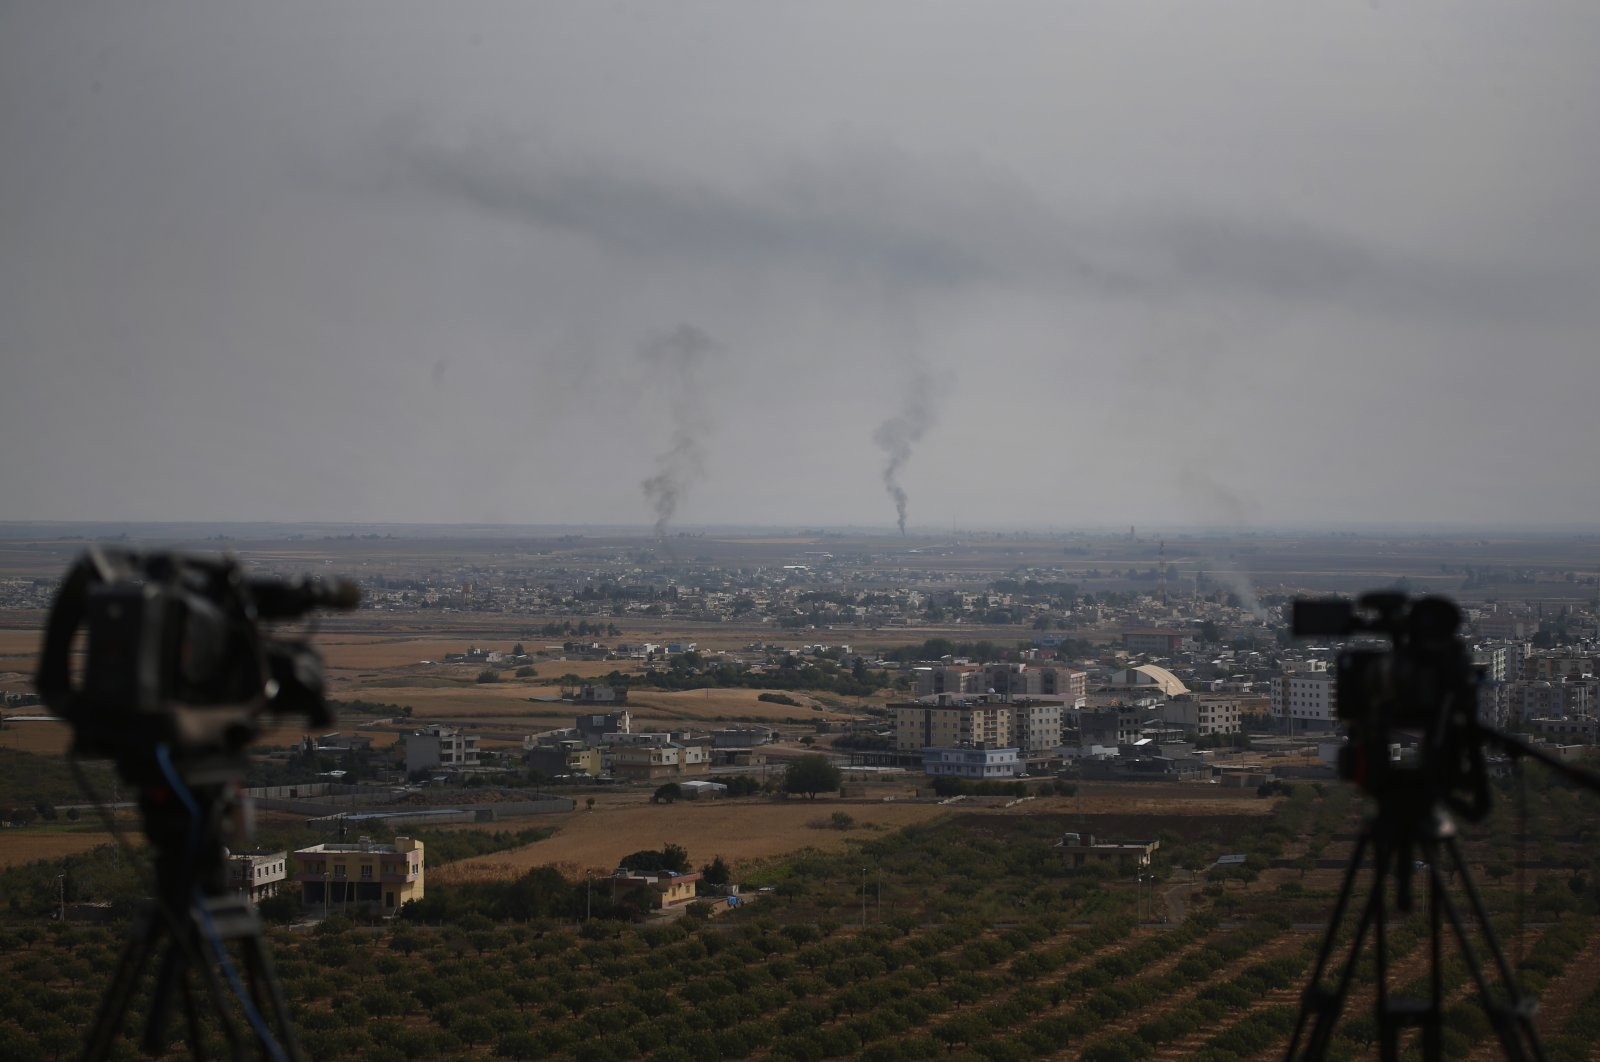 Television cameras are seen on a hilltop in Ceylanpınar, Şanlıurfa province, southeastern Turkey, as smoke billows from fires in the background in Ras al-Ain, Syria, Oct. 20, 2019. (AP File Photo)